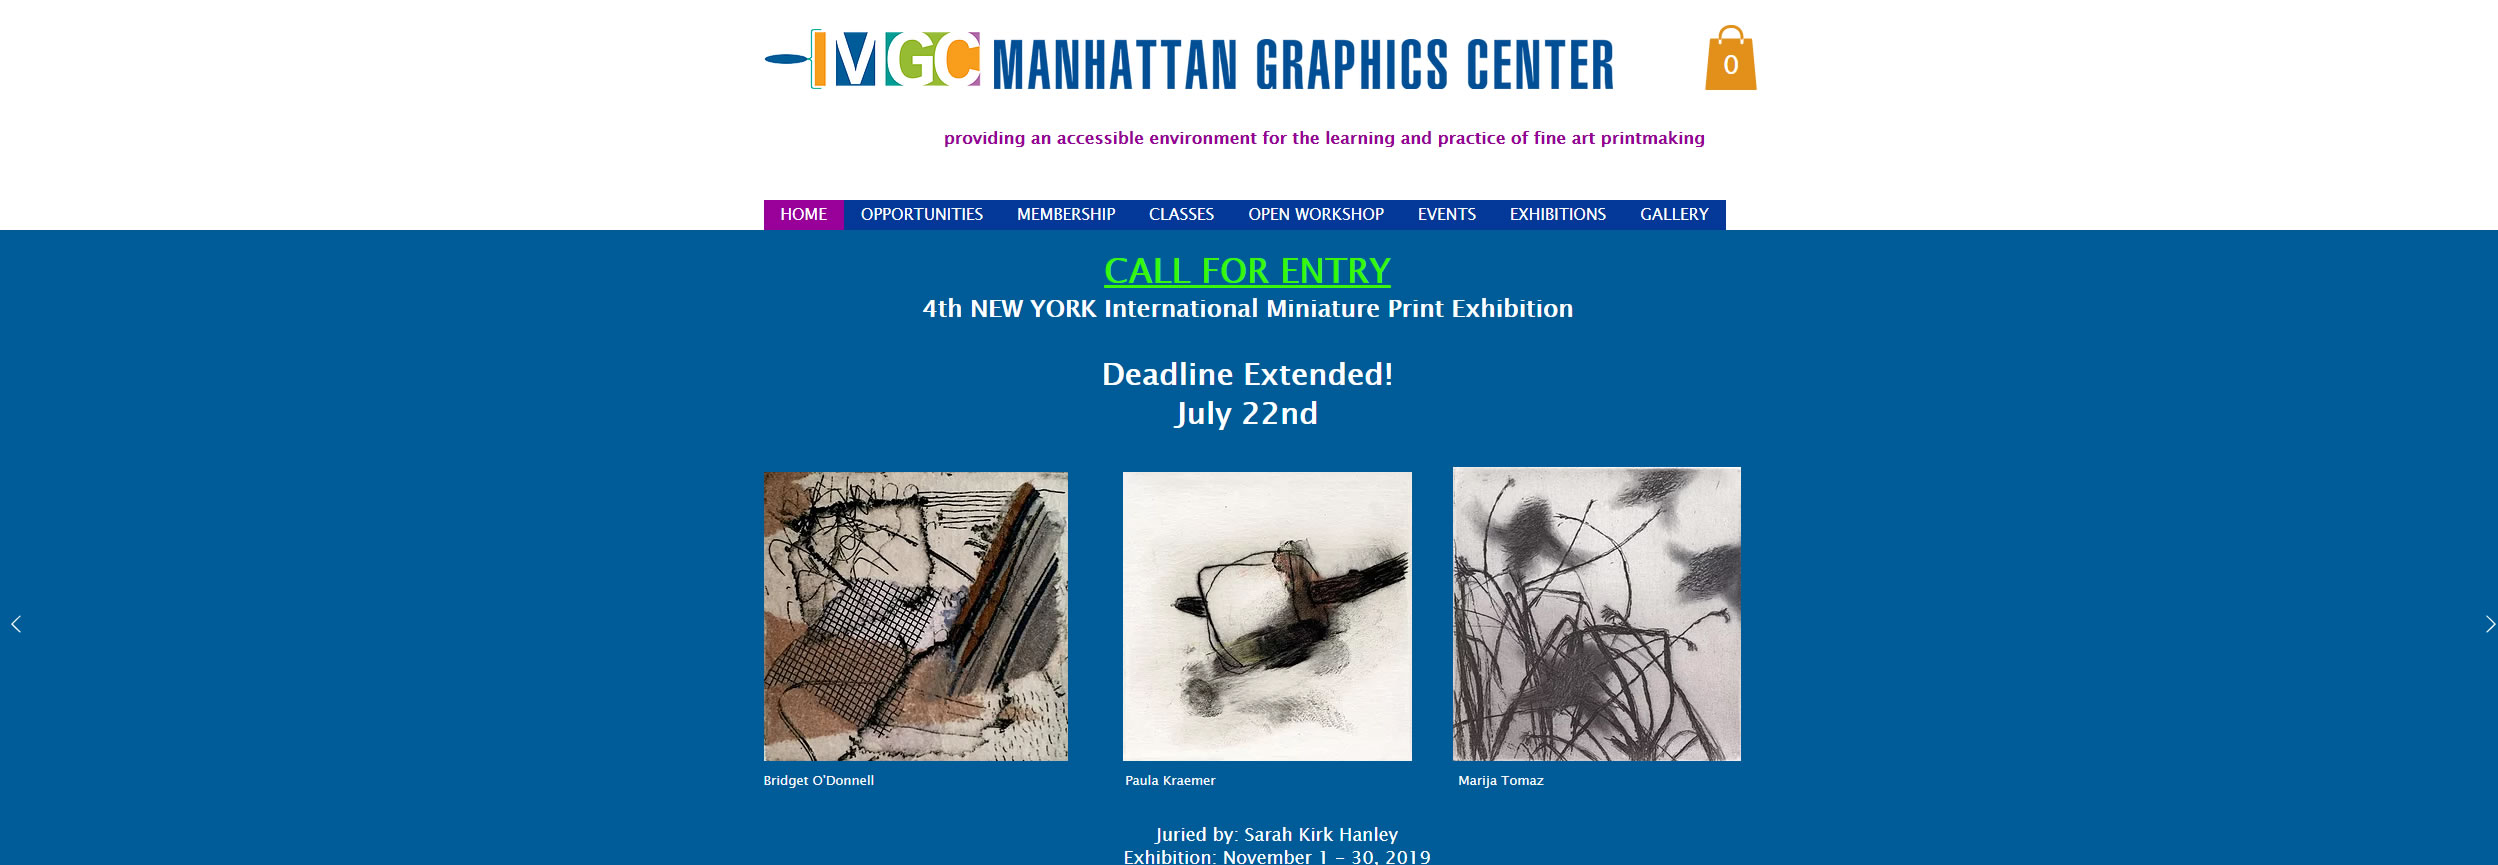 manhattan_graphics_center_galeria_de_gravura